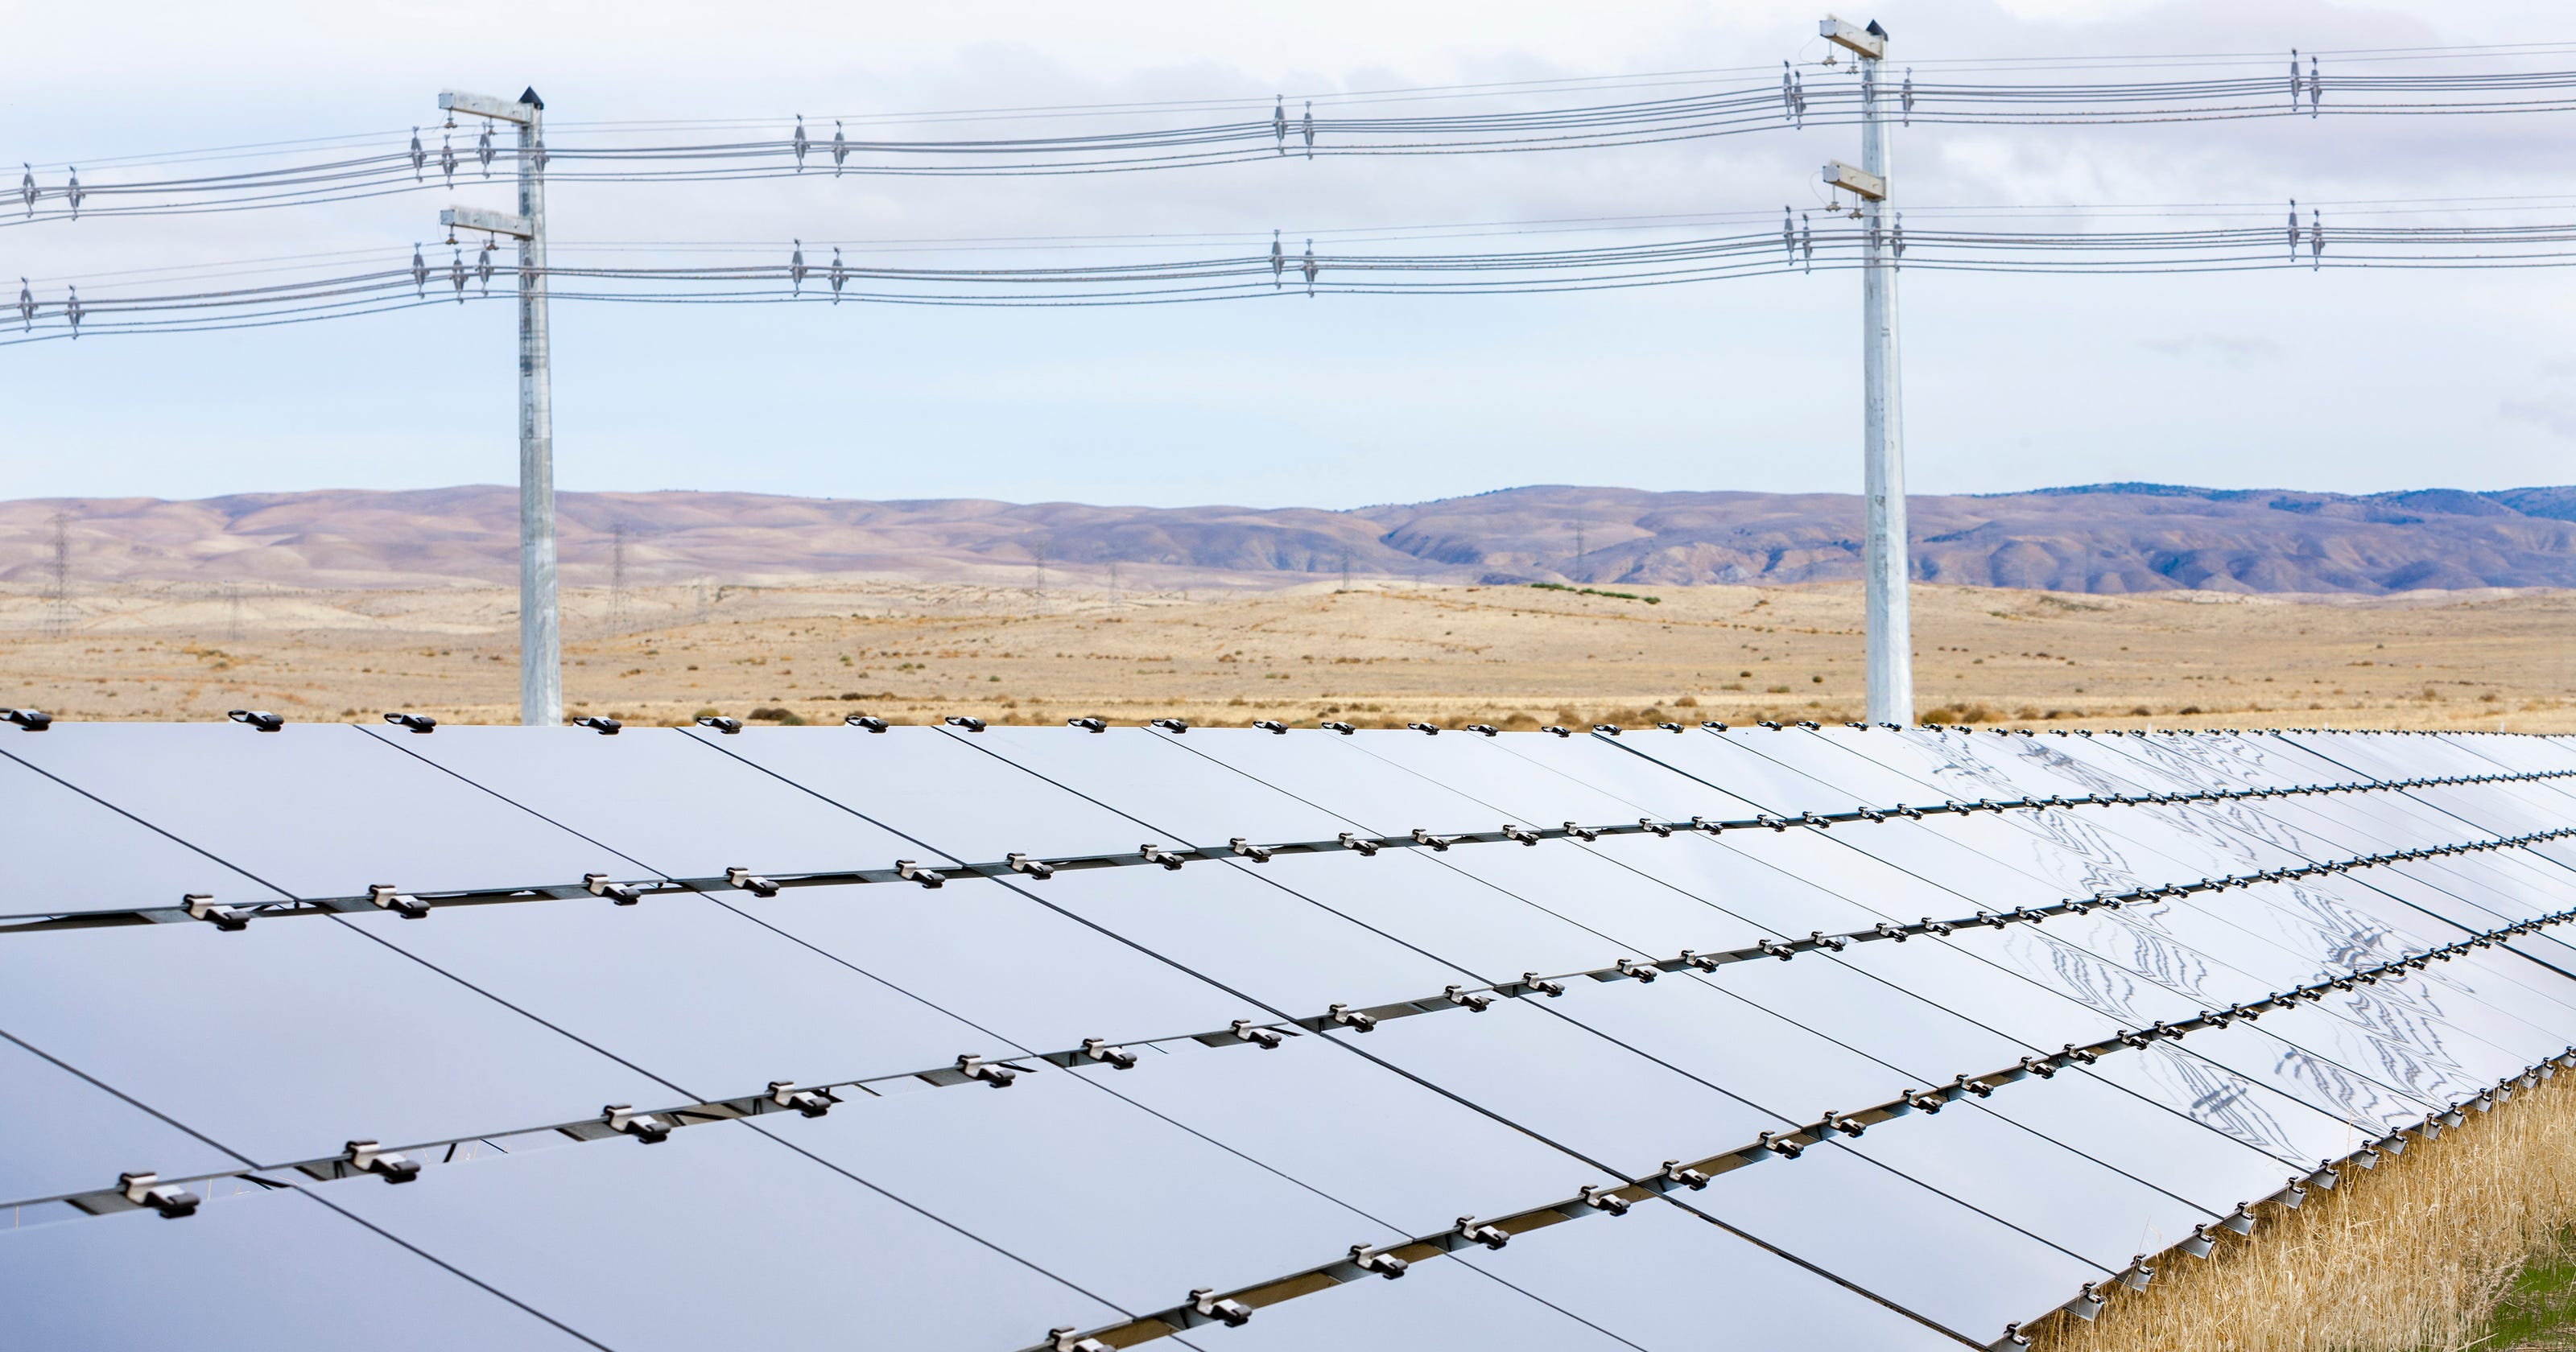 Aps First Solar Plan Large Arizona Plant With Giant Battery Wiring A Small Bank Panels Forum